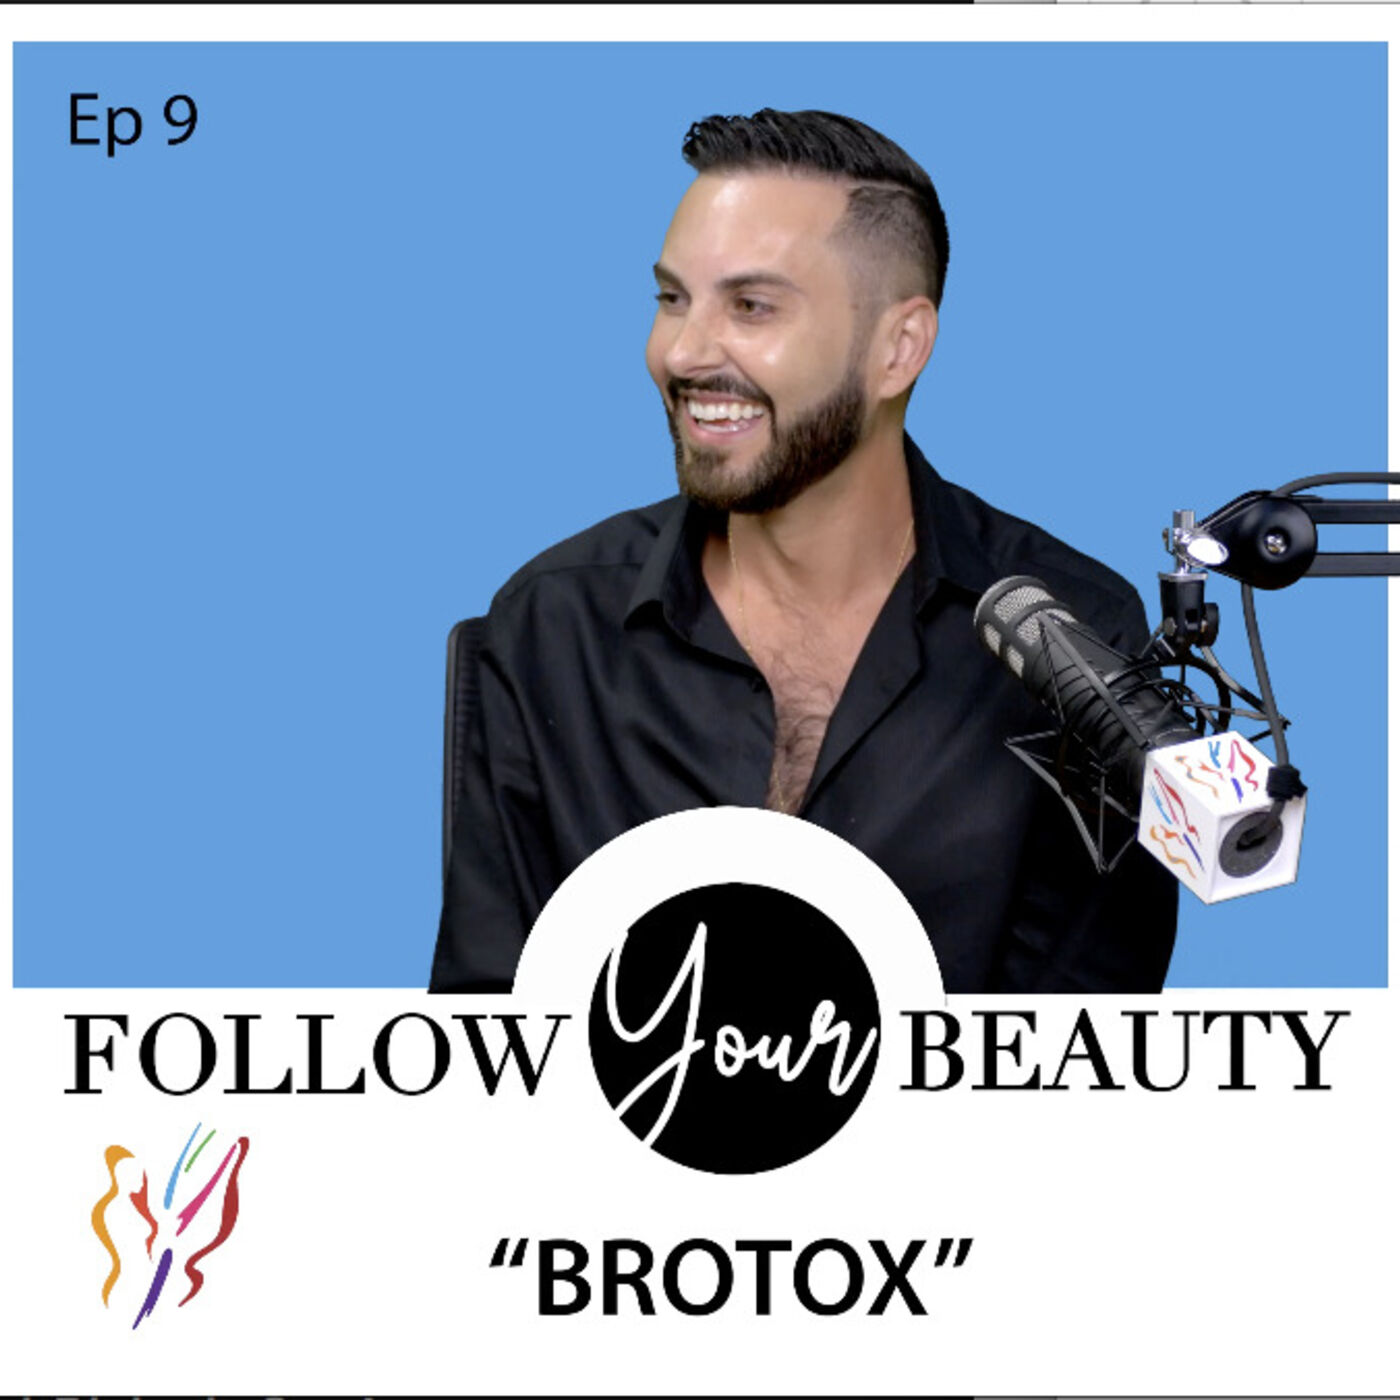 Follow Your Beauty - Brotox for the Man in Your Life